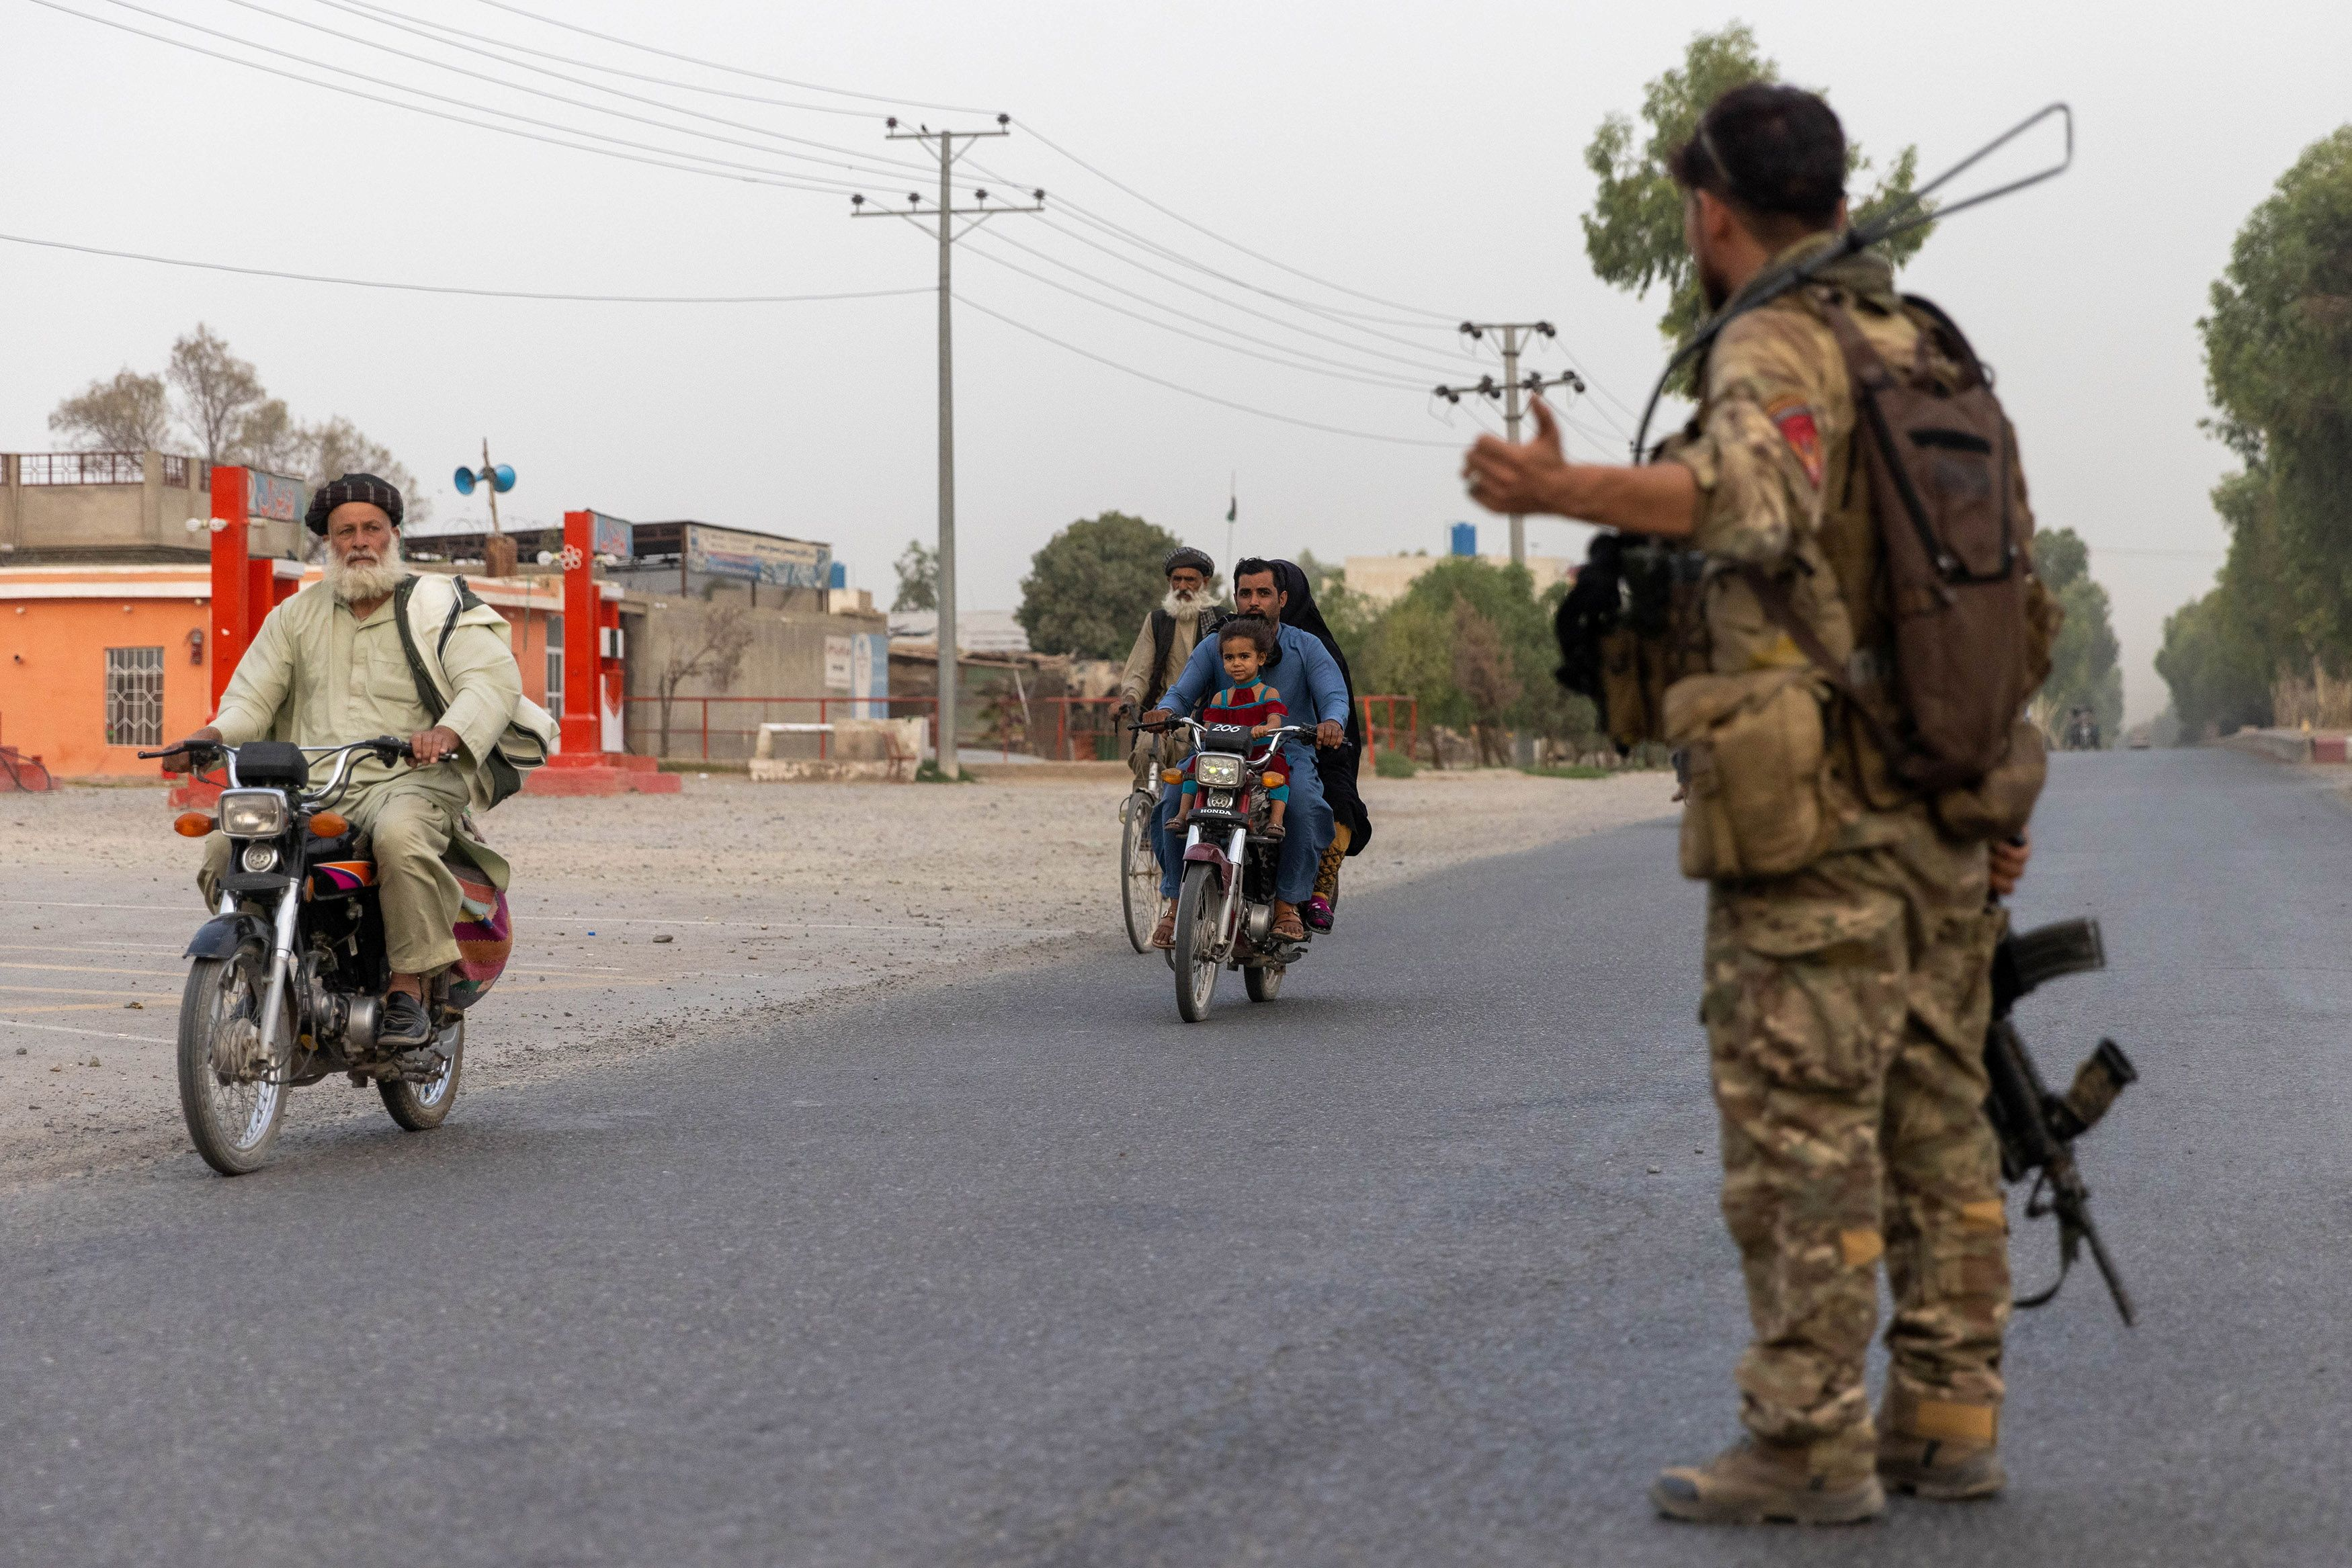 A member of the Afghan Special Forces directs traffic during the rescue mission of a policeman besieged at a check post surrounded by Taliban, in Kandahar province, Afghanistan, July 13, 2021. Picture taken July 13, 2021.REUTERS/Danish Siddiqui